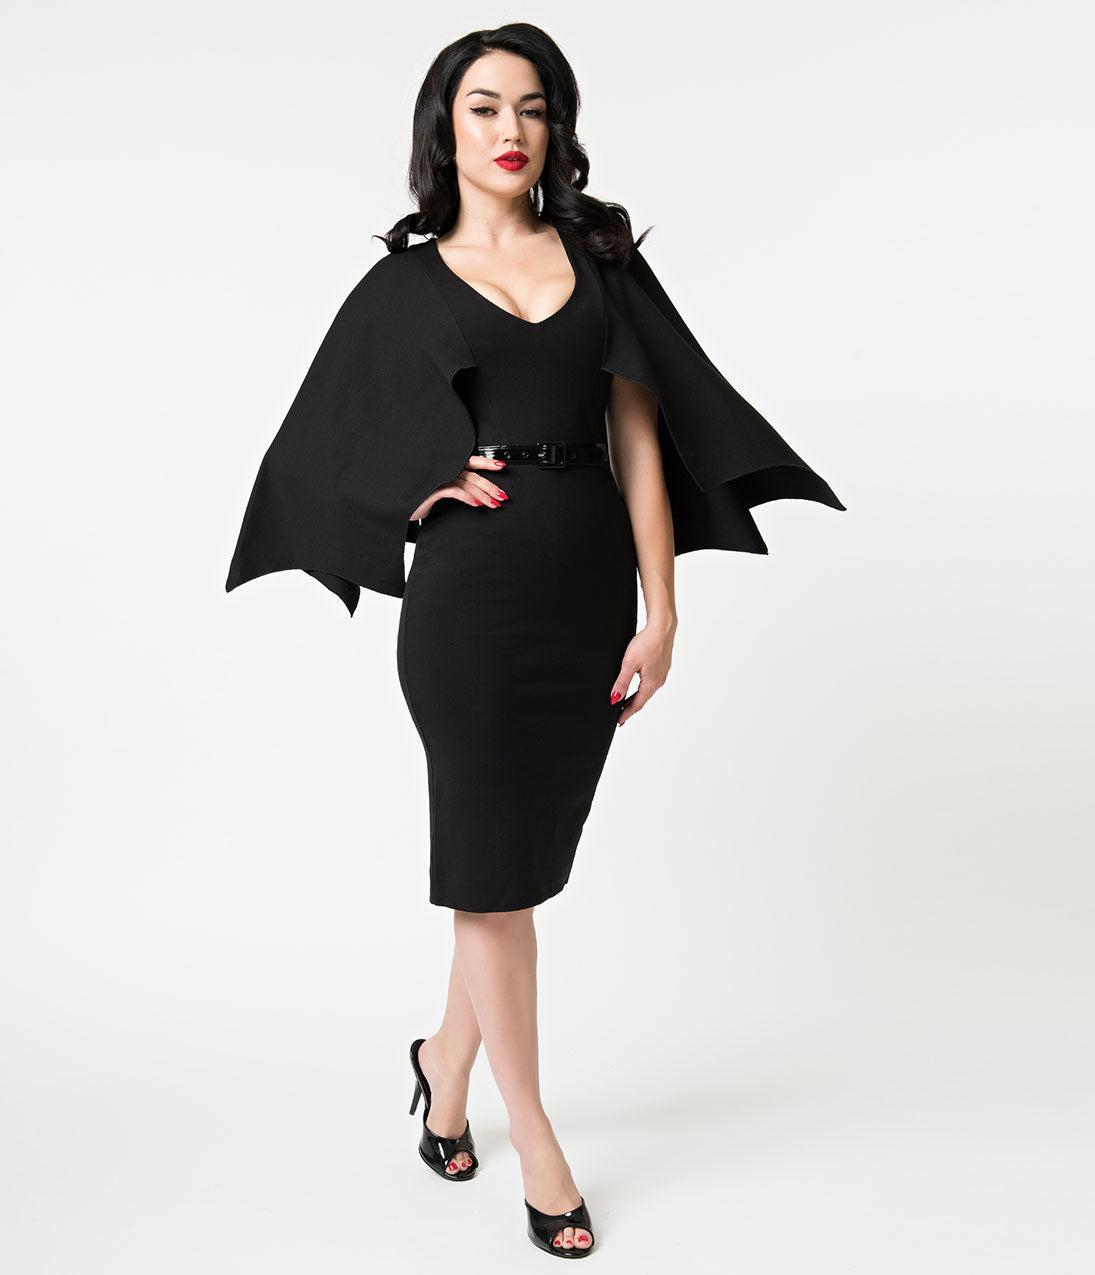 Vintage Retro Halloween Themed Clothing Folter Black Sleeved Creature Of The Night Wiggle Dress $59.00 AT vintagedancer.com